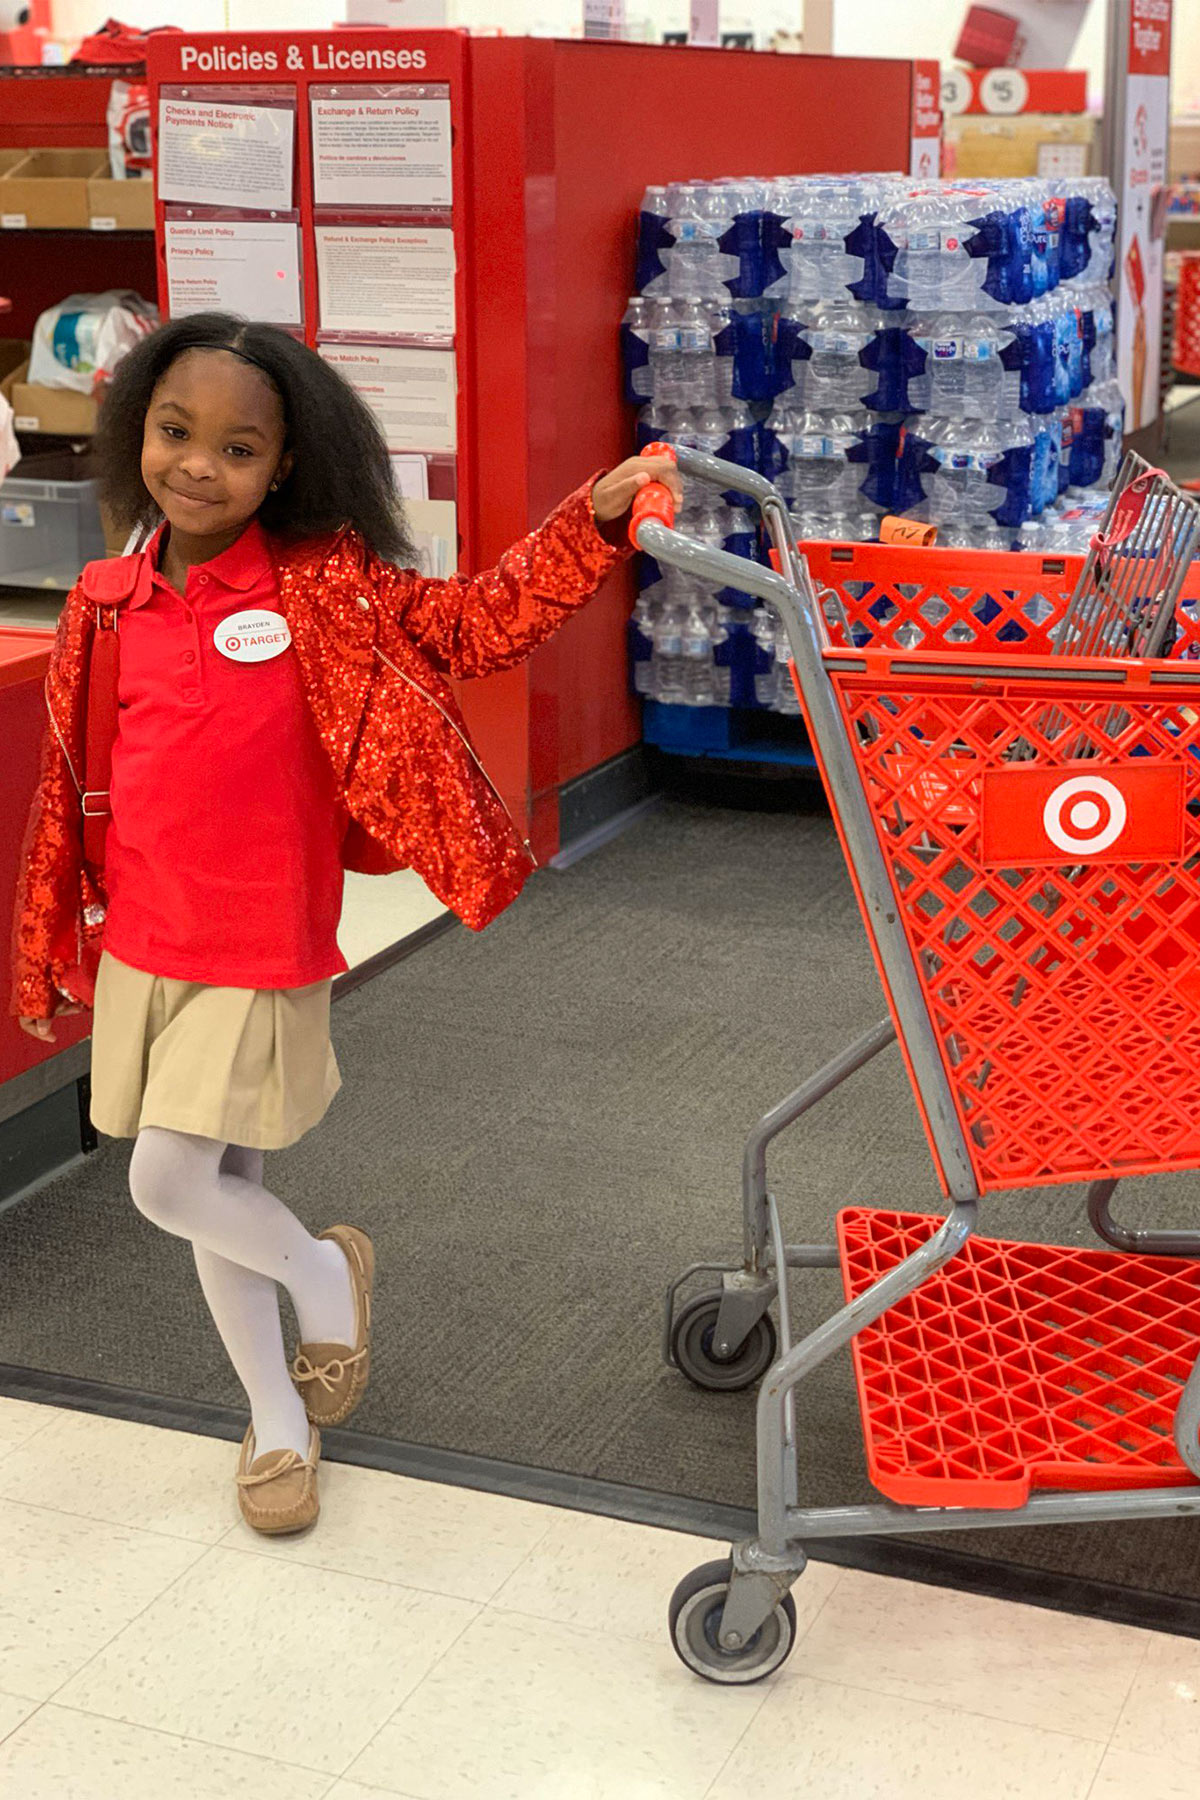 8-Year-Old Girl in Atlanta Throws Her Dream Birthday Party with Friends at Local Target